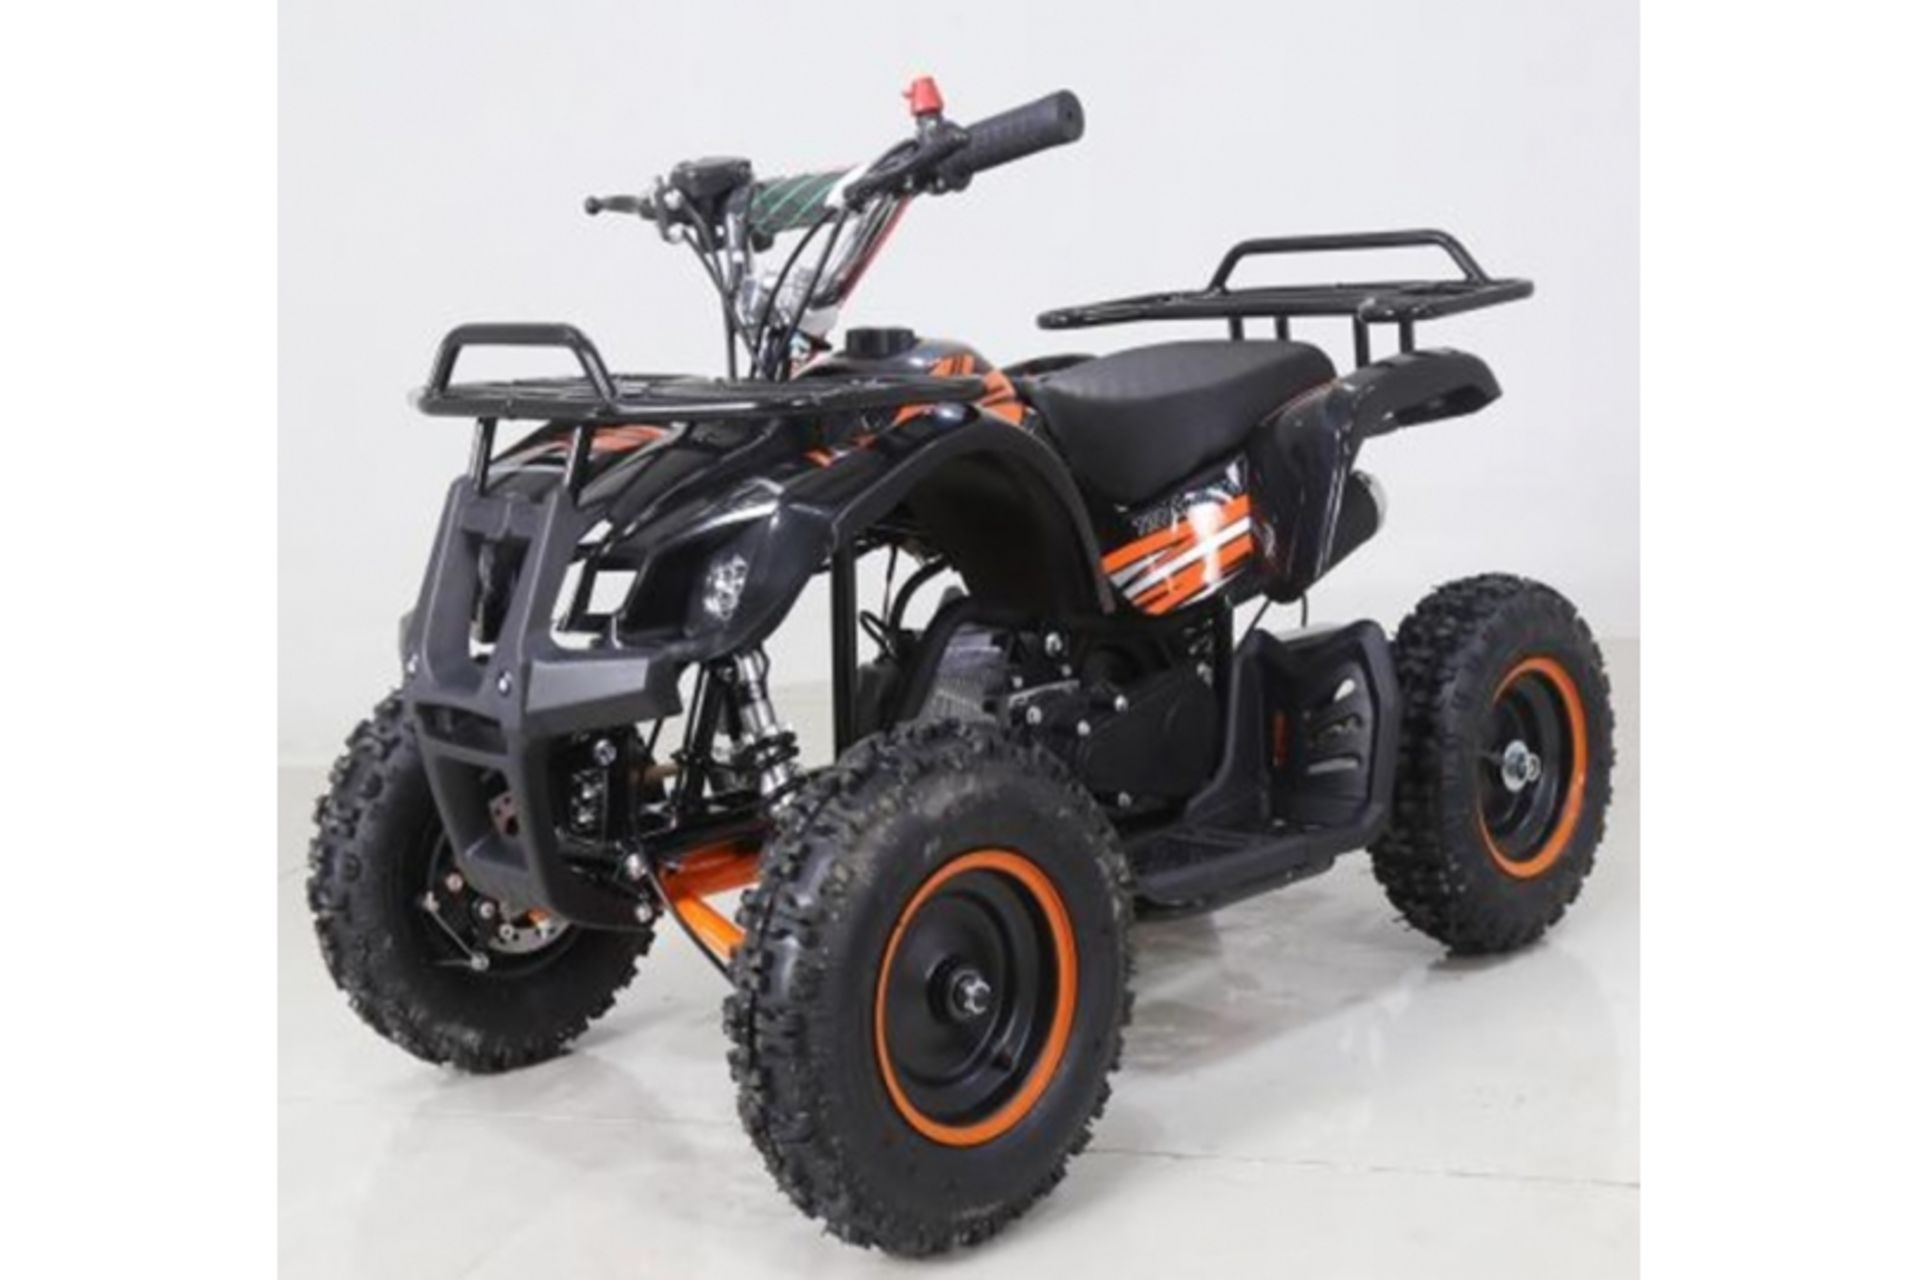 Lot 31905 - + VAT Brand New 50cc Mini Quad Bike FRM - Colours May Vary - Available Approx 7 Working Days After